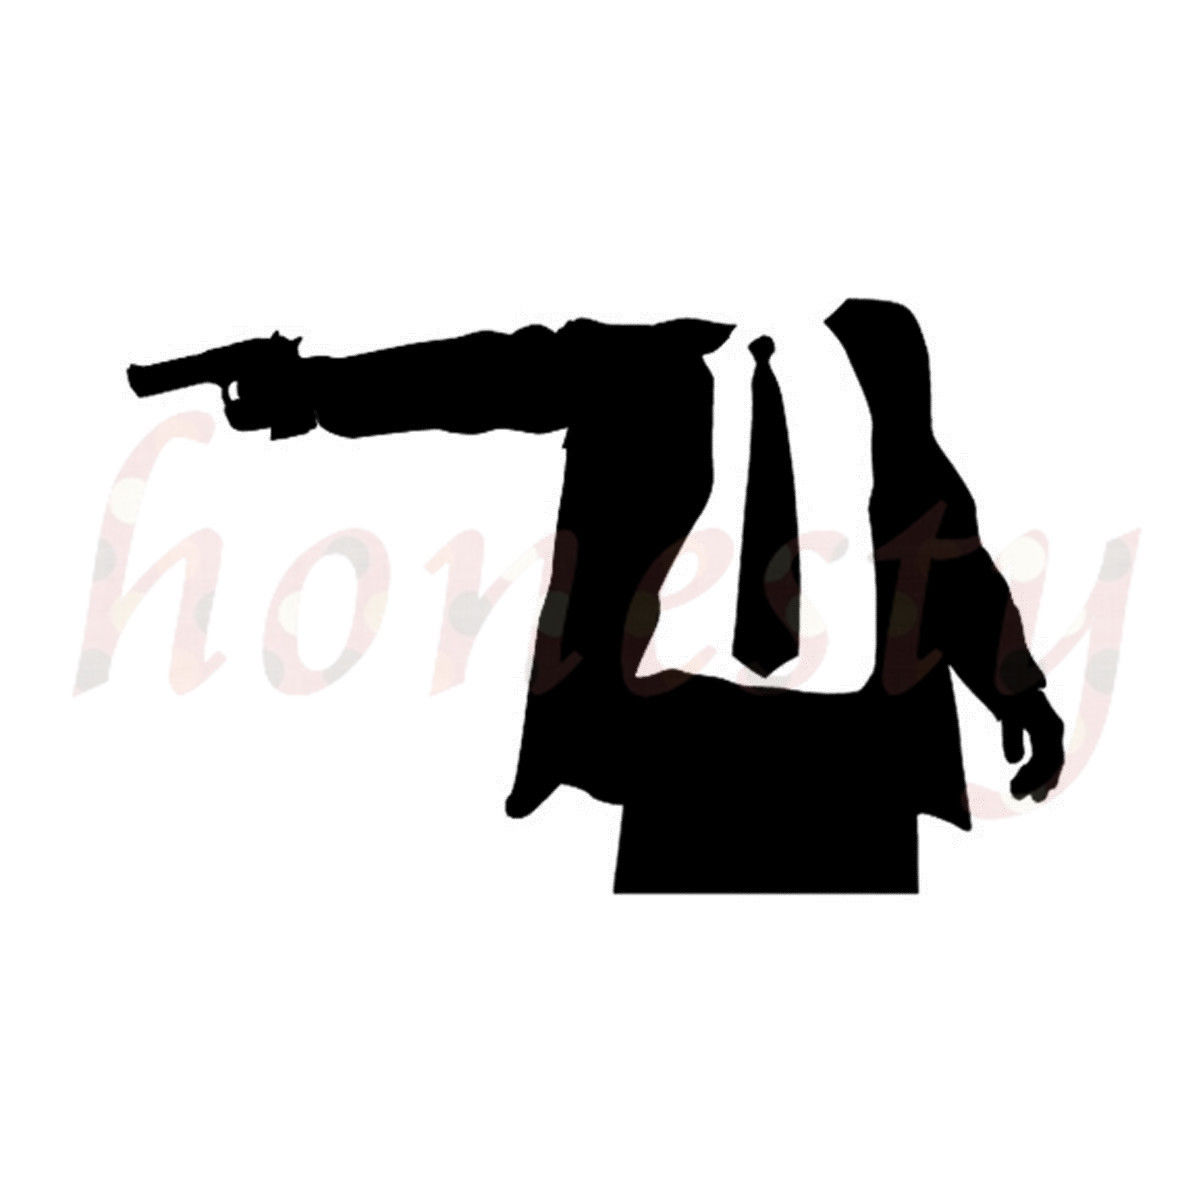 Cold Triad Gangster Suit Hitman Funny Car Sticker Truck Window Laptop Wall Decal Funny Car Car Stickerfunny Car Stickers Aliexpress